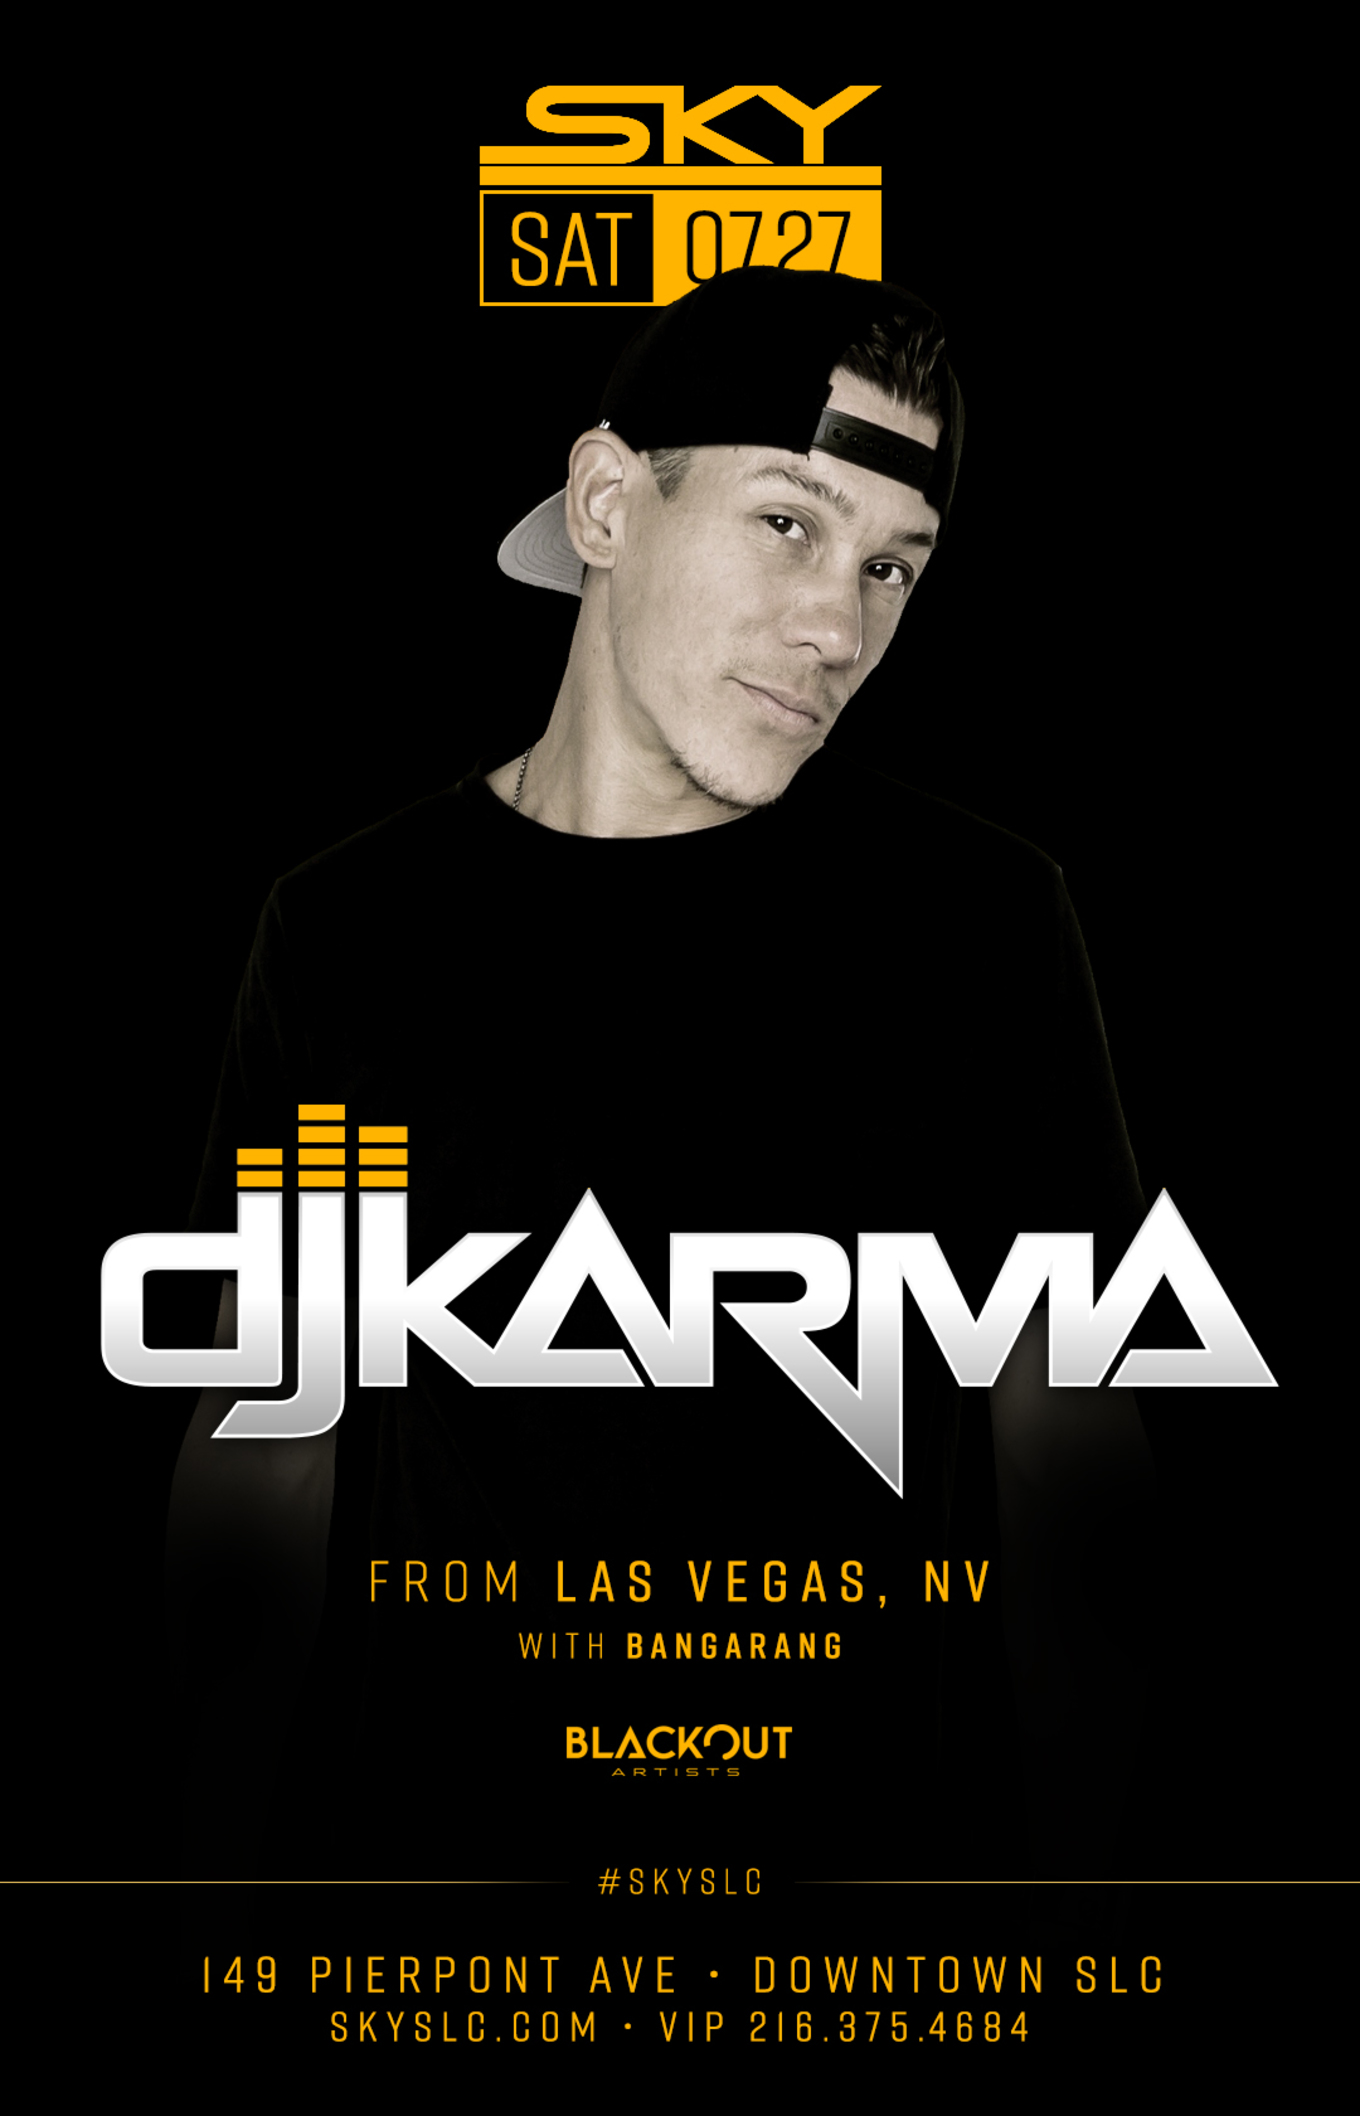 SKY SATURDAYS : DJ KARMA - Tickets - Sky SLC, Salt Lake City, UT